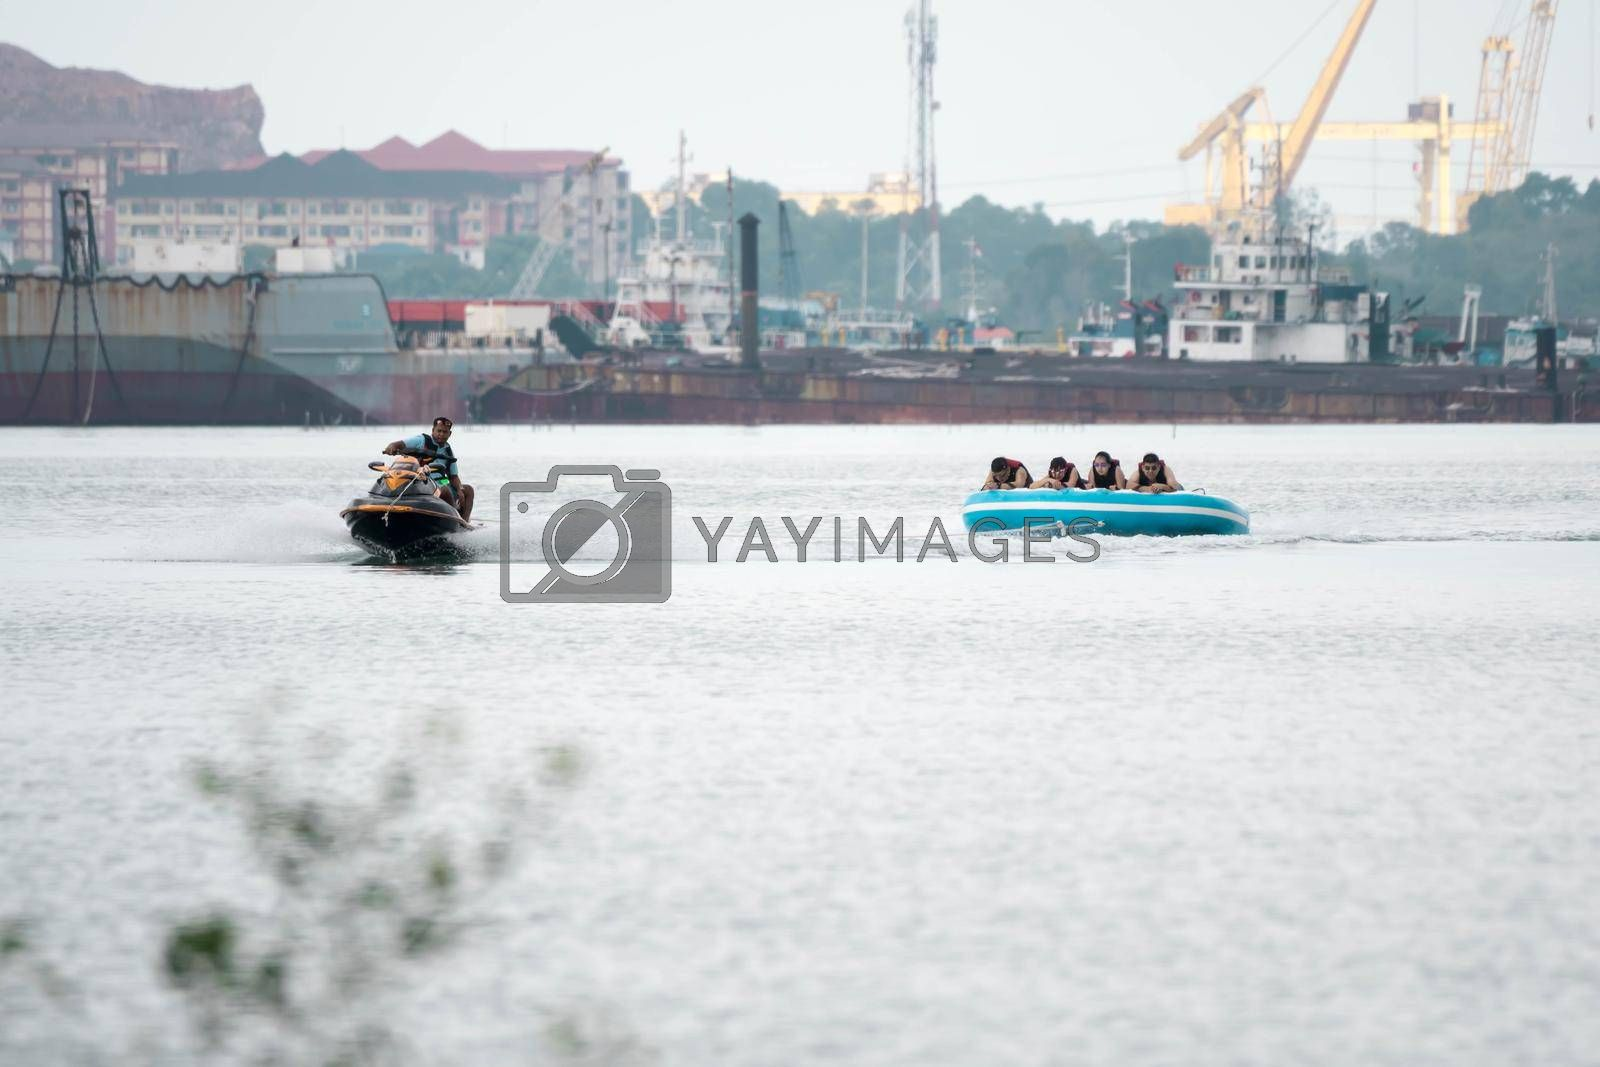 Beach water sports tubing with tourist being pulled by jetski in a beach in batam indonesia, Indonesia, May 4 2019